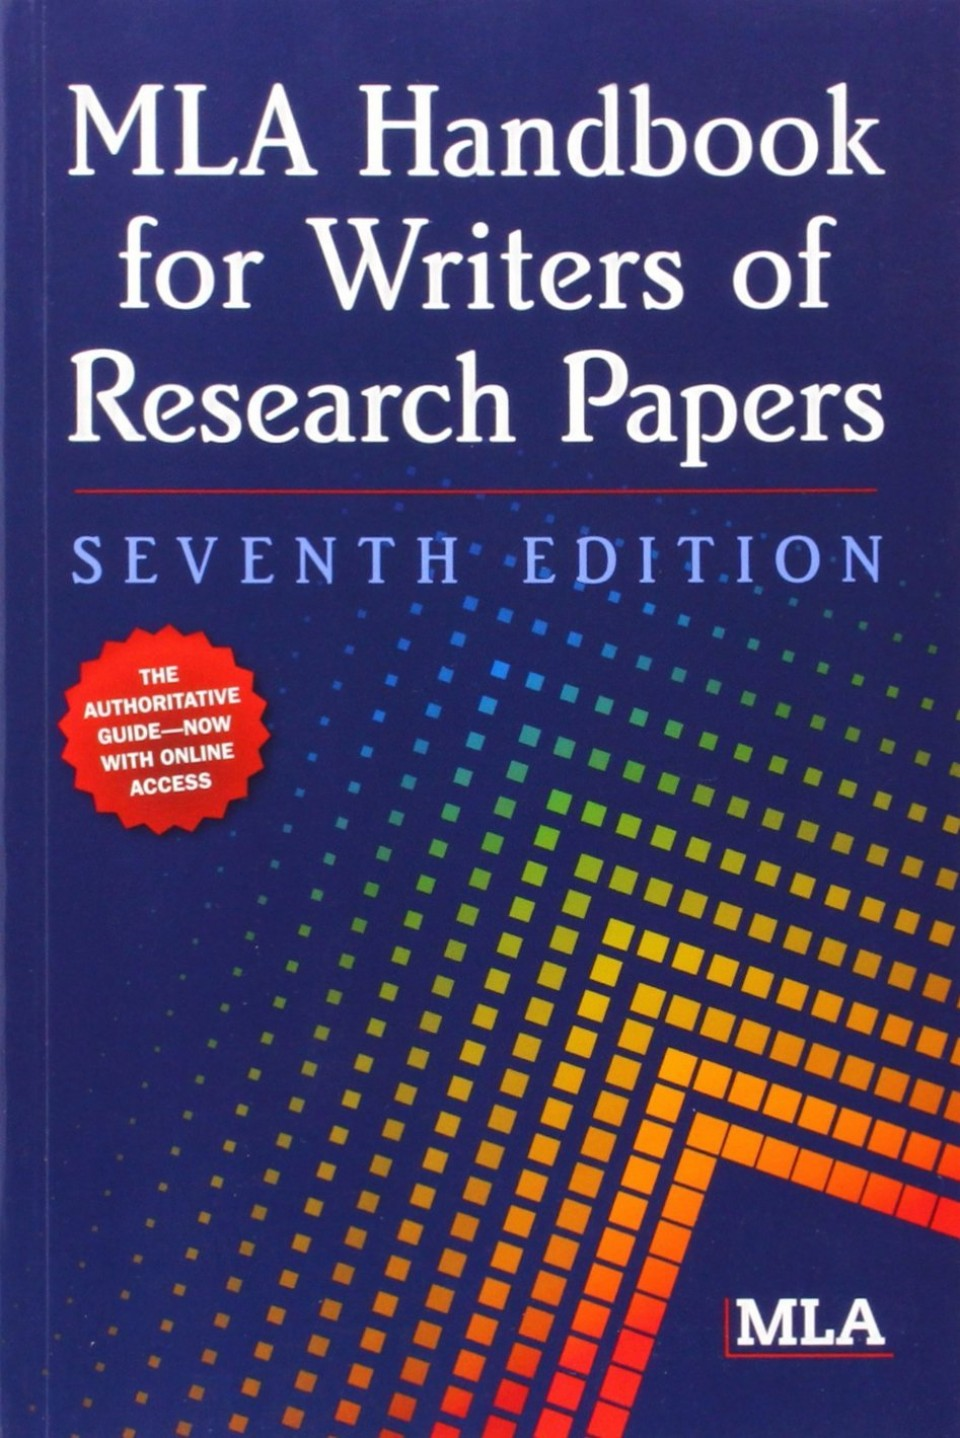 001 The Mla Handbook For Writers Of Research Papers Paper Fearsome 8th Edition 7th 2009 (8th Ed.) 960